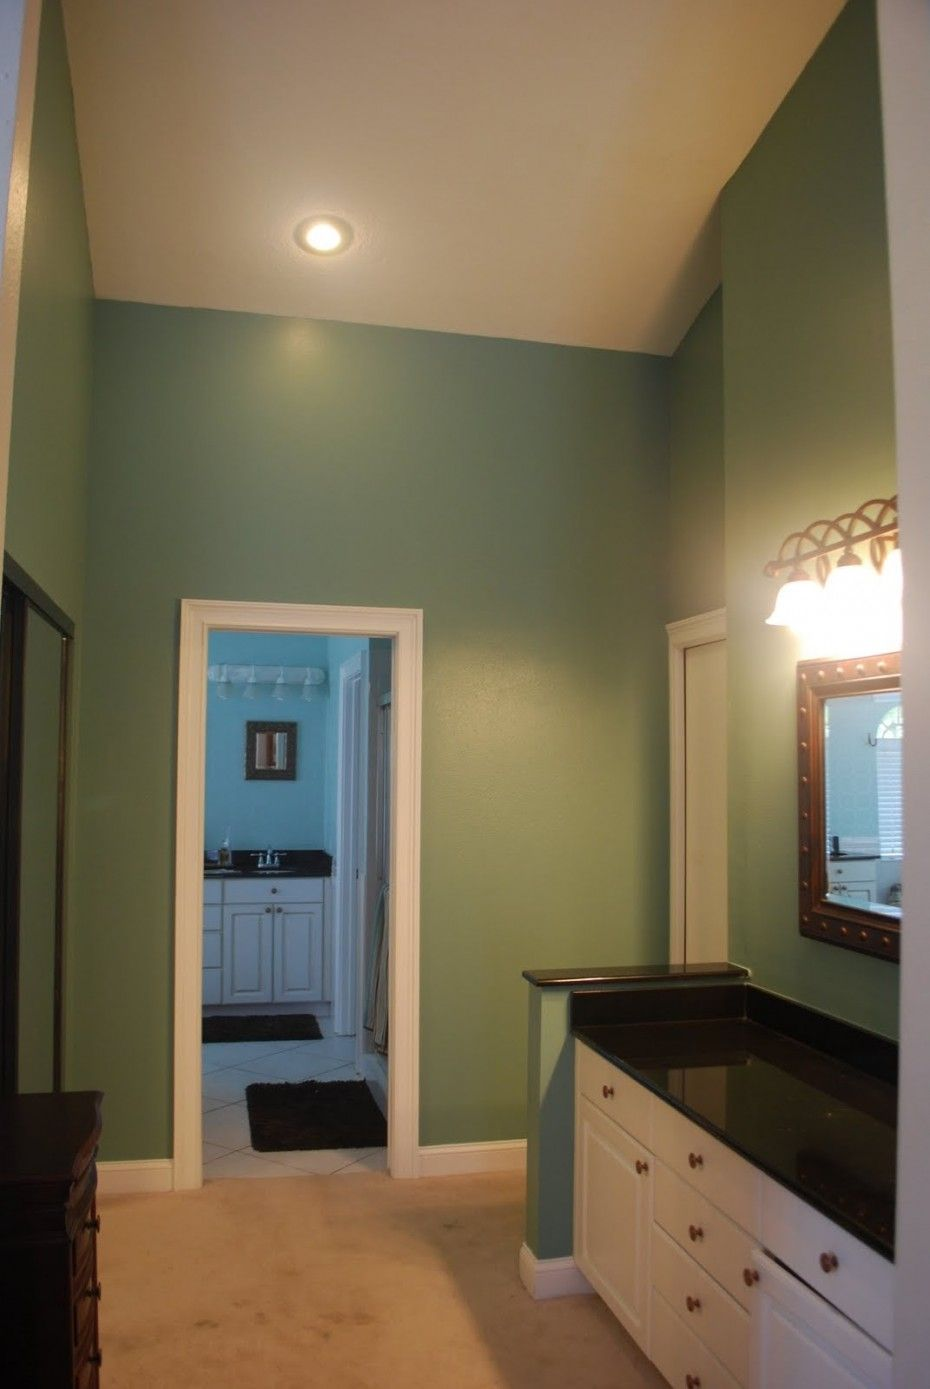 Bathroom paint colors ideas warm green bathroom painting for Bathroom painting designs